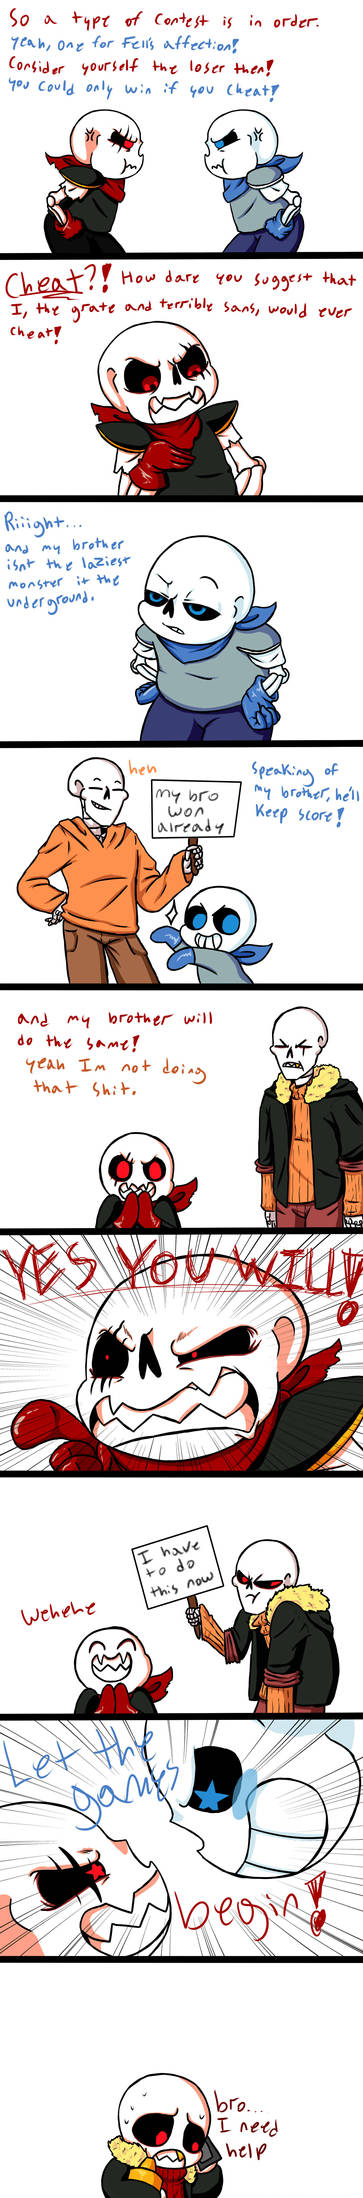 undertale crap by Afteel-Nifty on DeviantArt